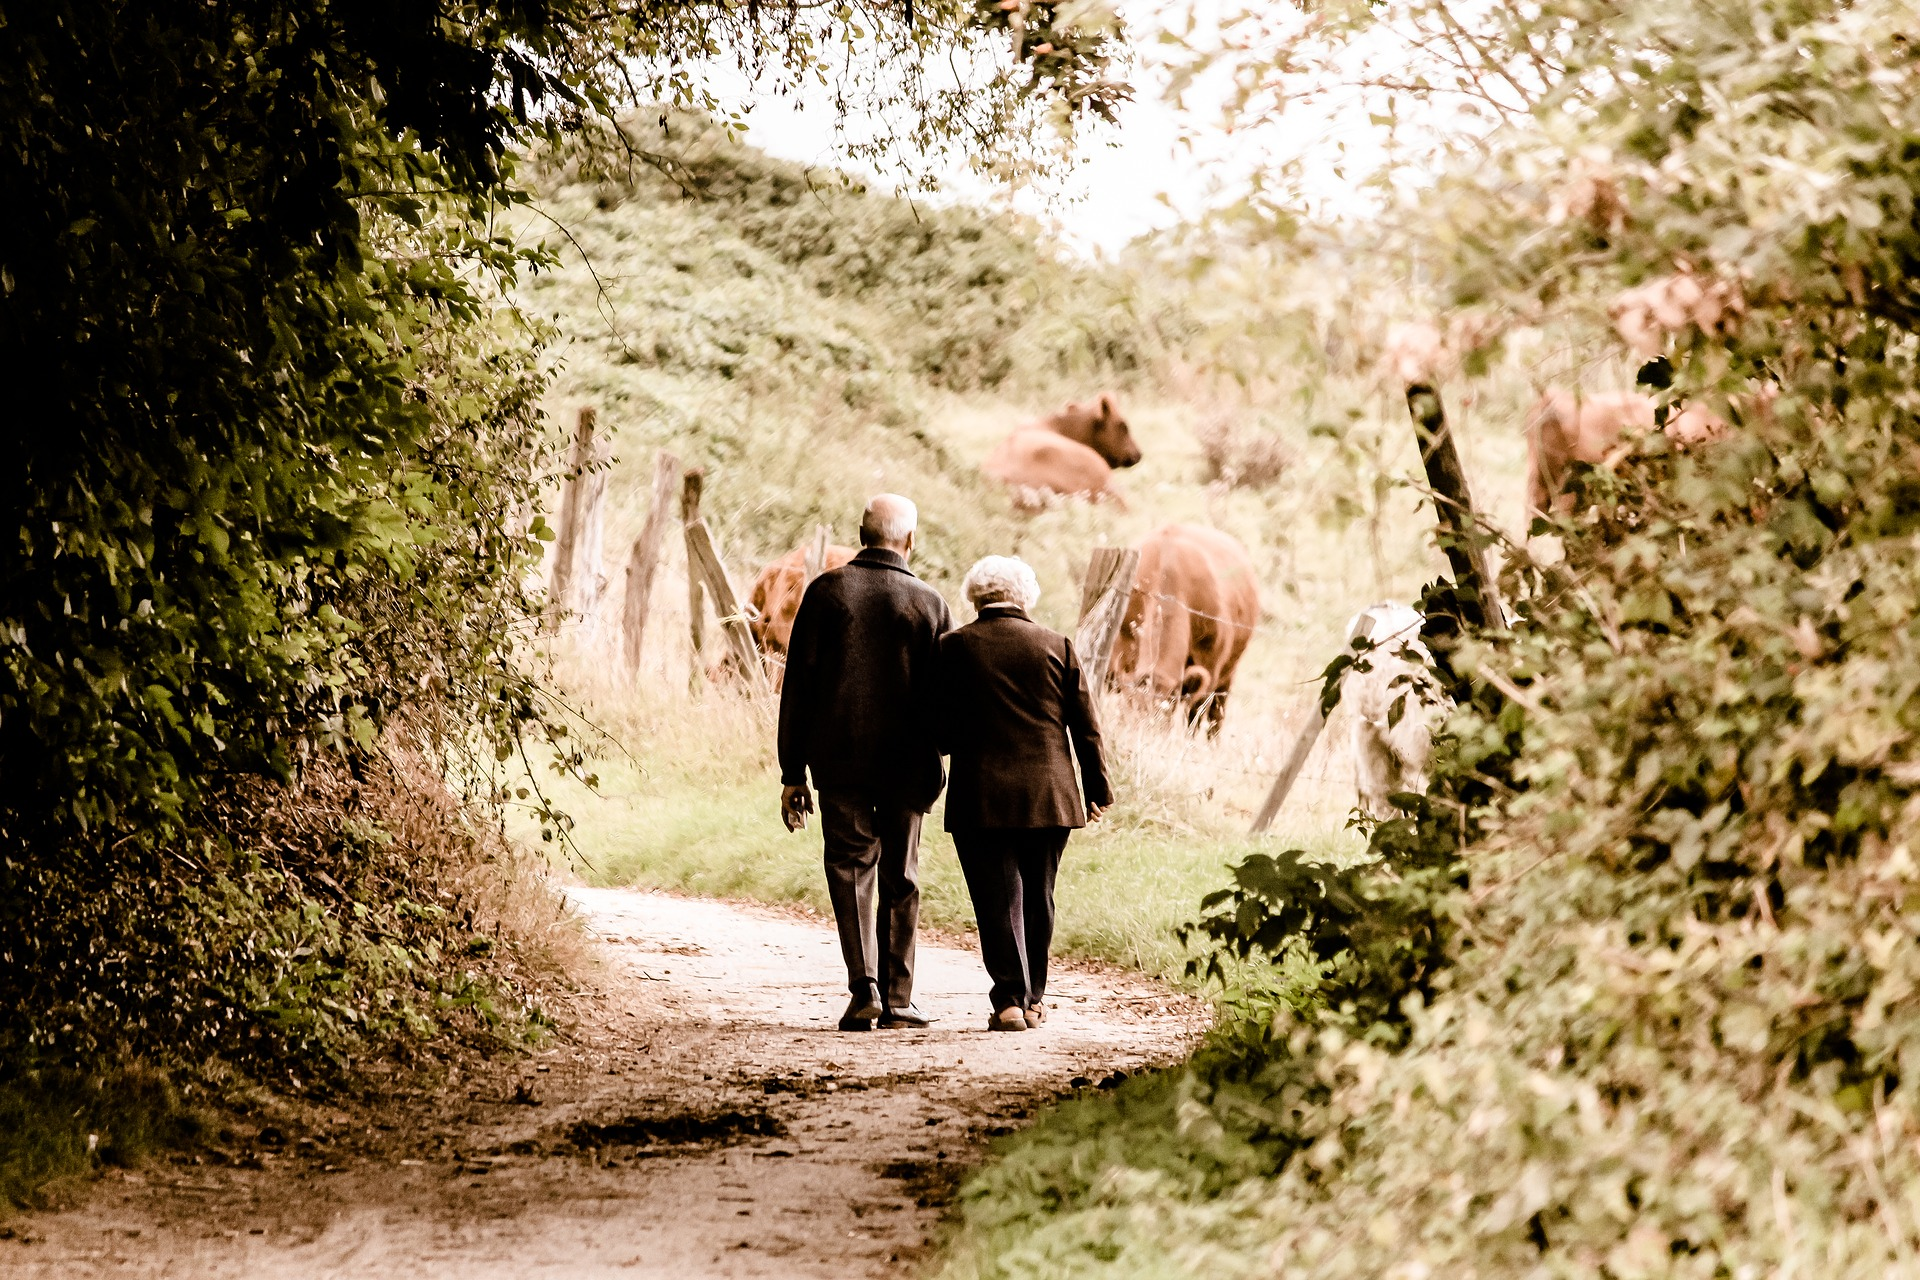 Advantages and disadvantages of online dating for seniors